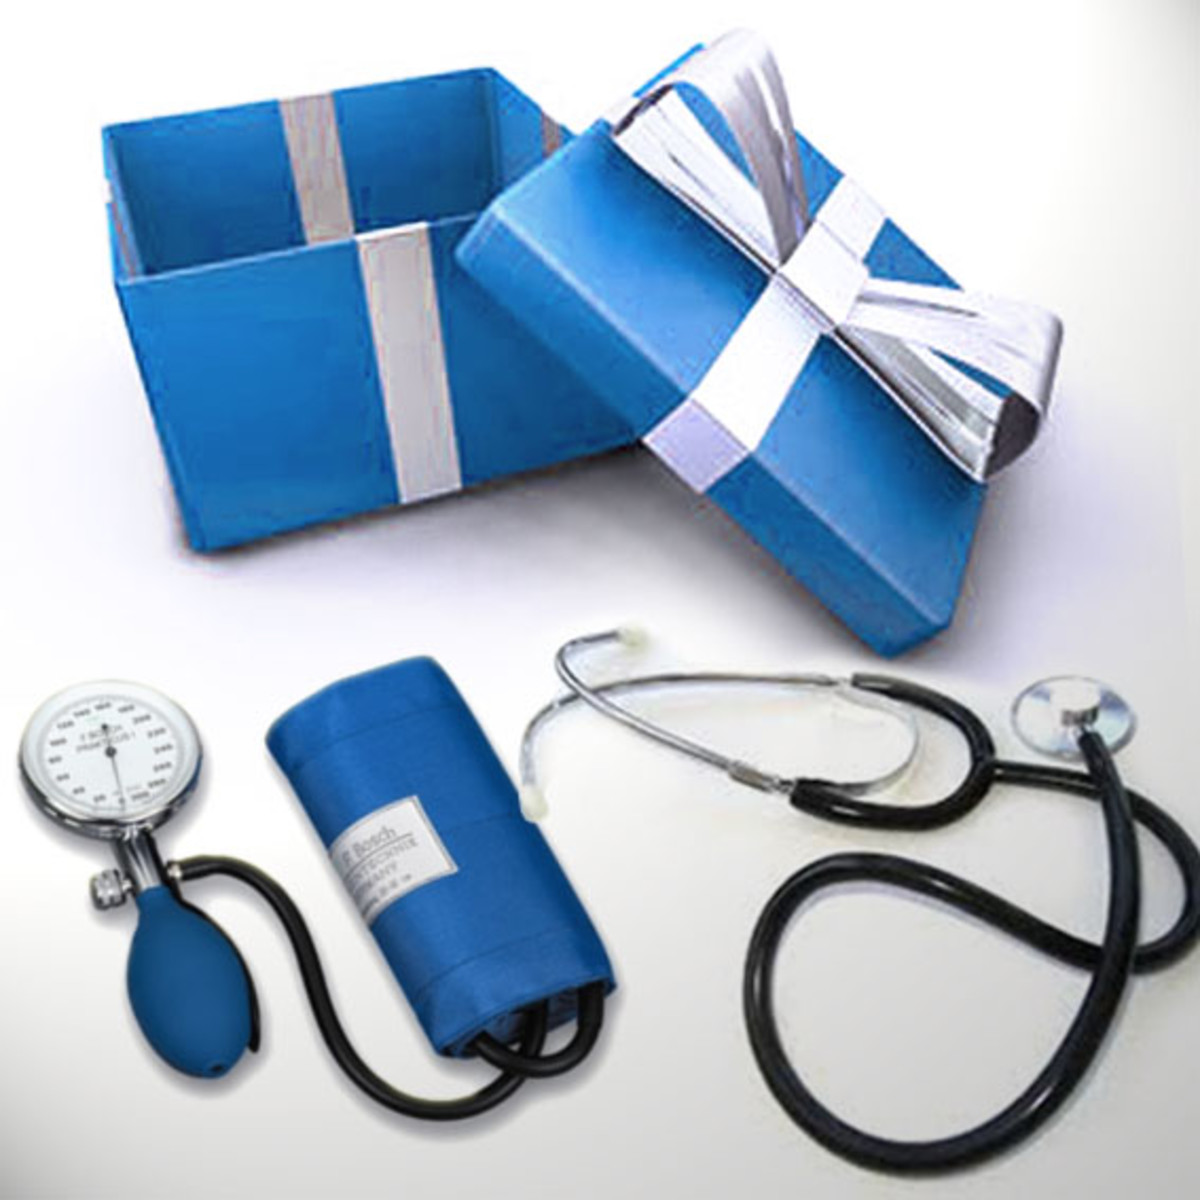 Great Gift Ideas for Nurses and Other Health Care Workers